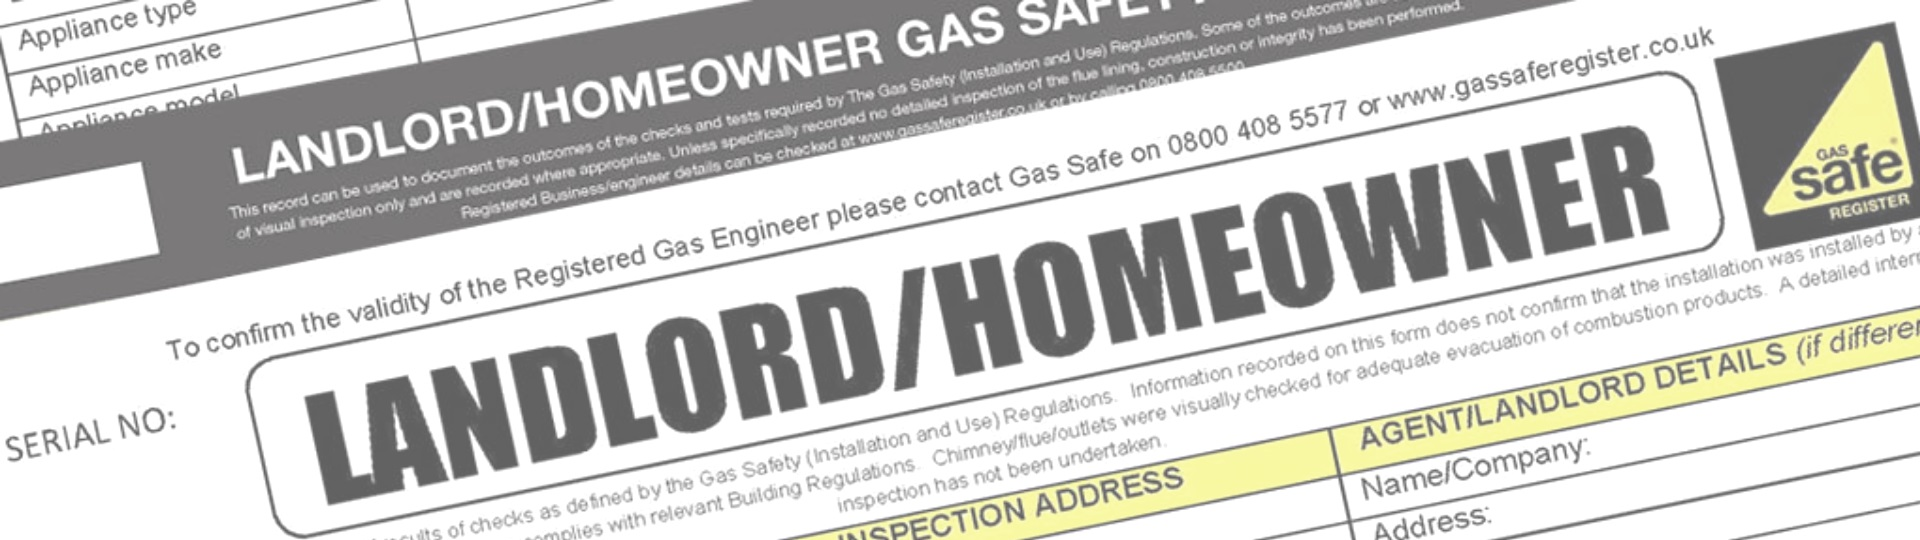 Gas Saftey Certificates Knowle West